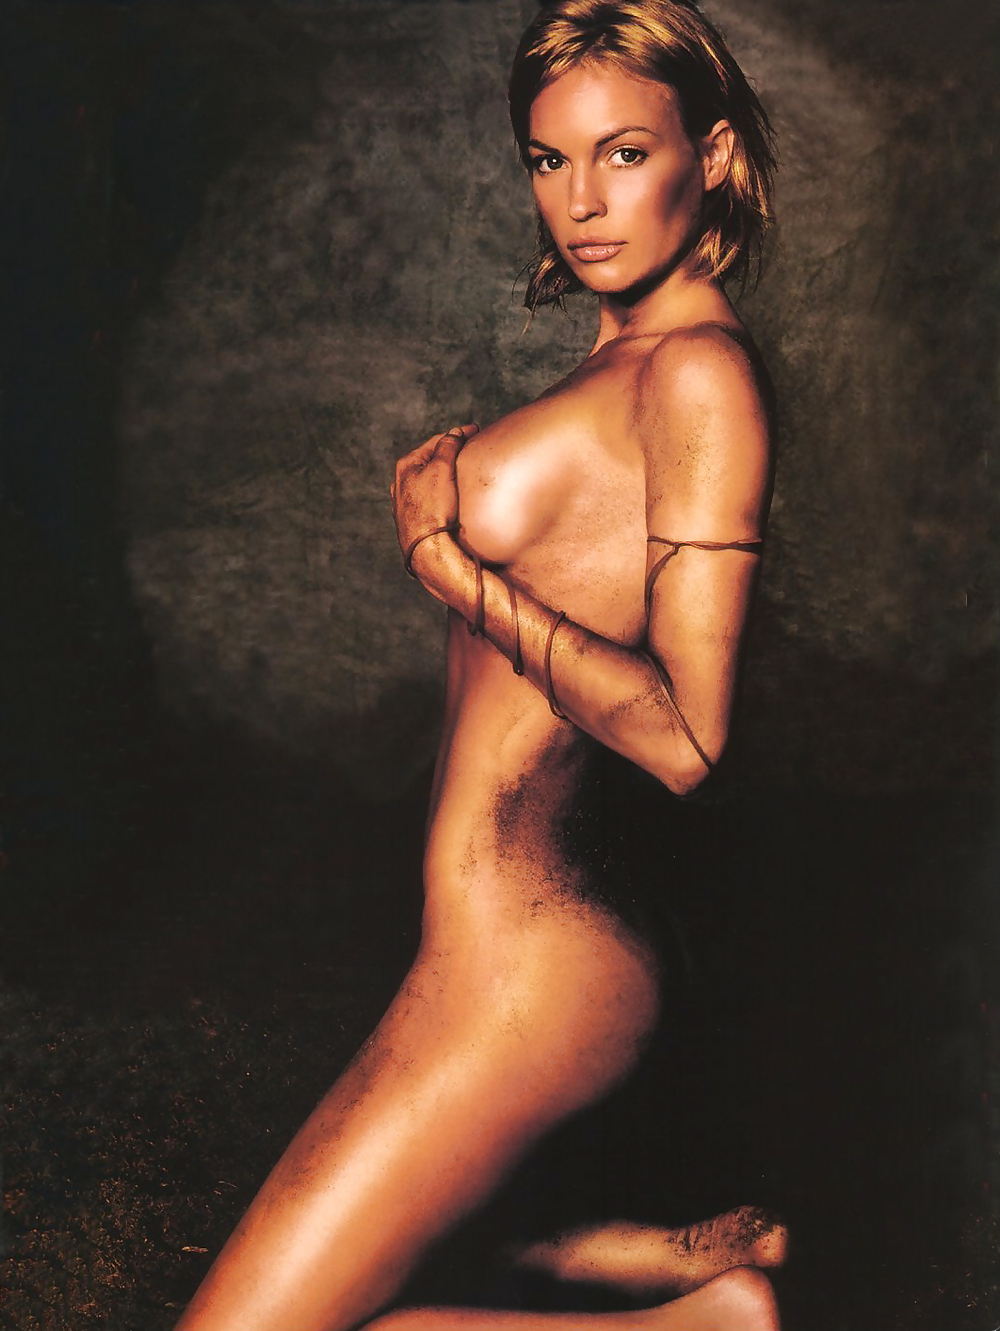 Jolene blalock naked opinion you